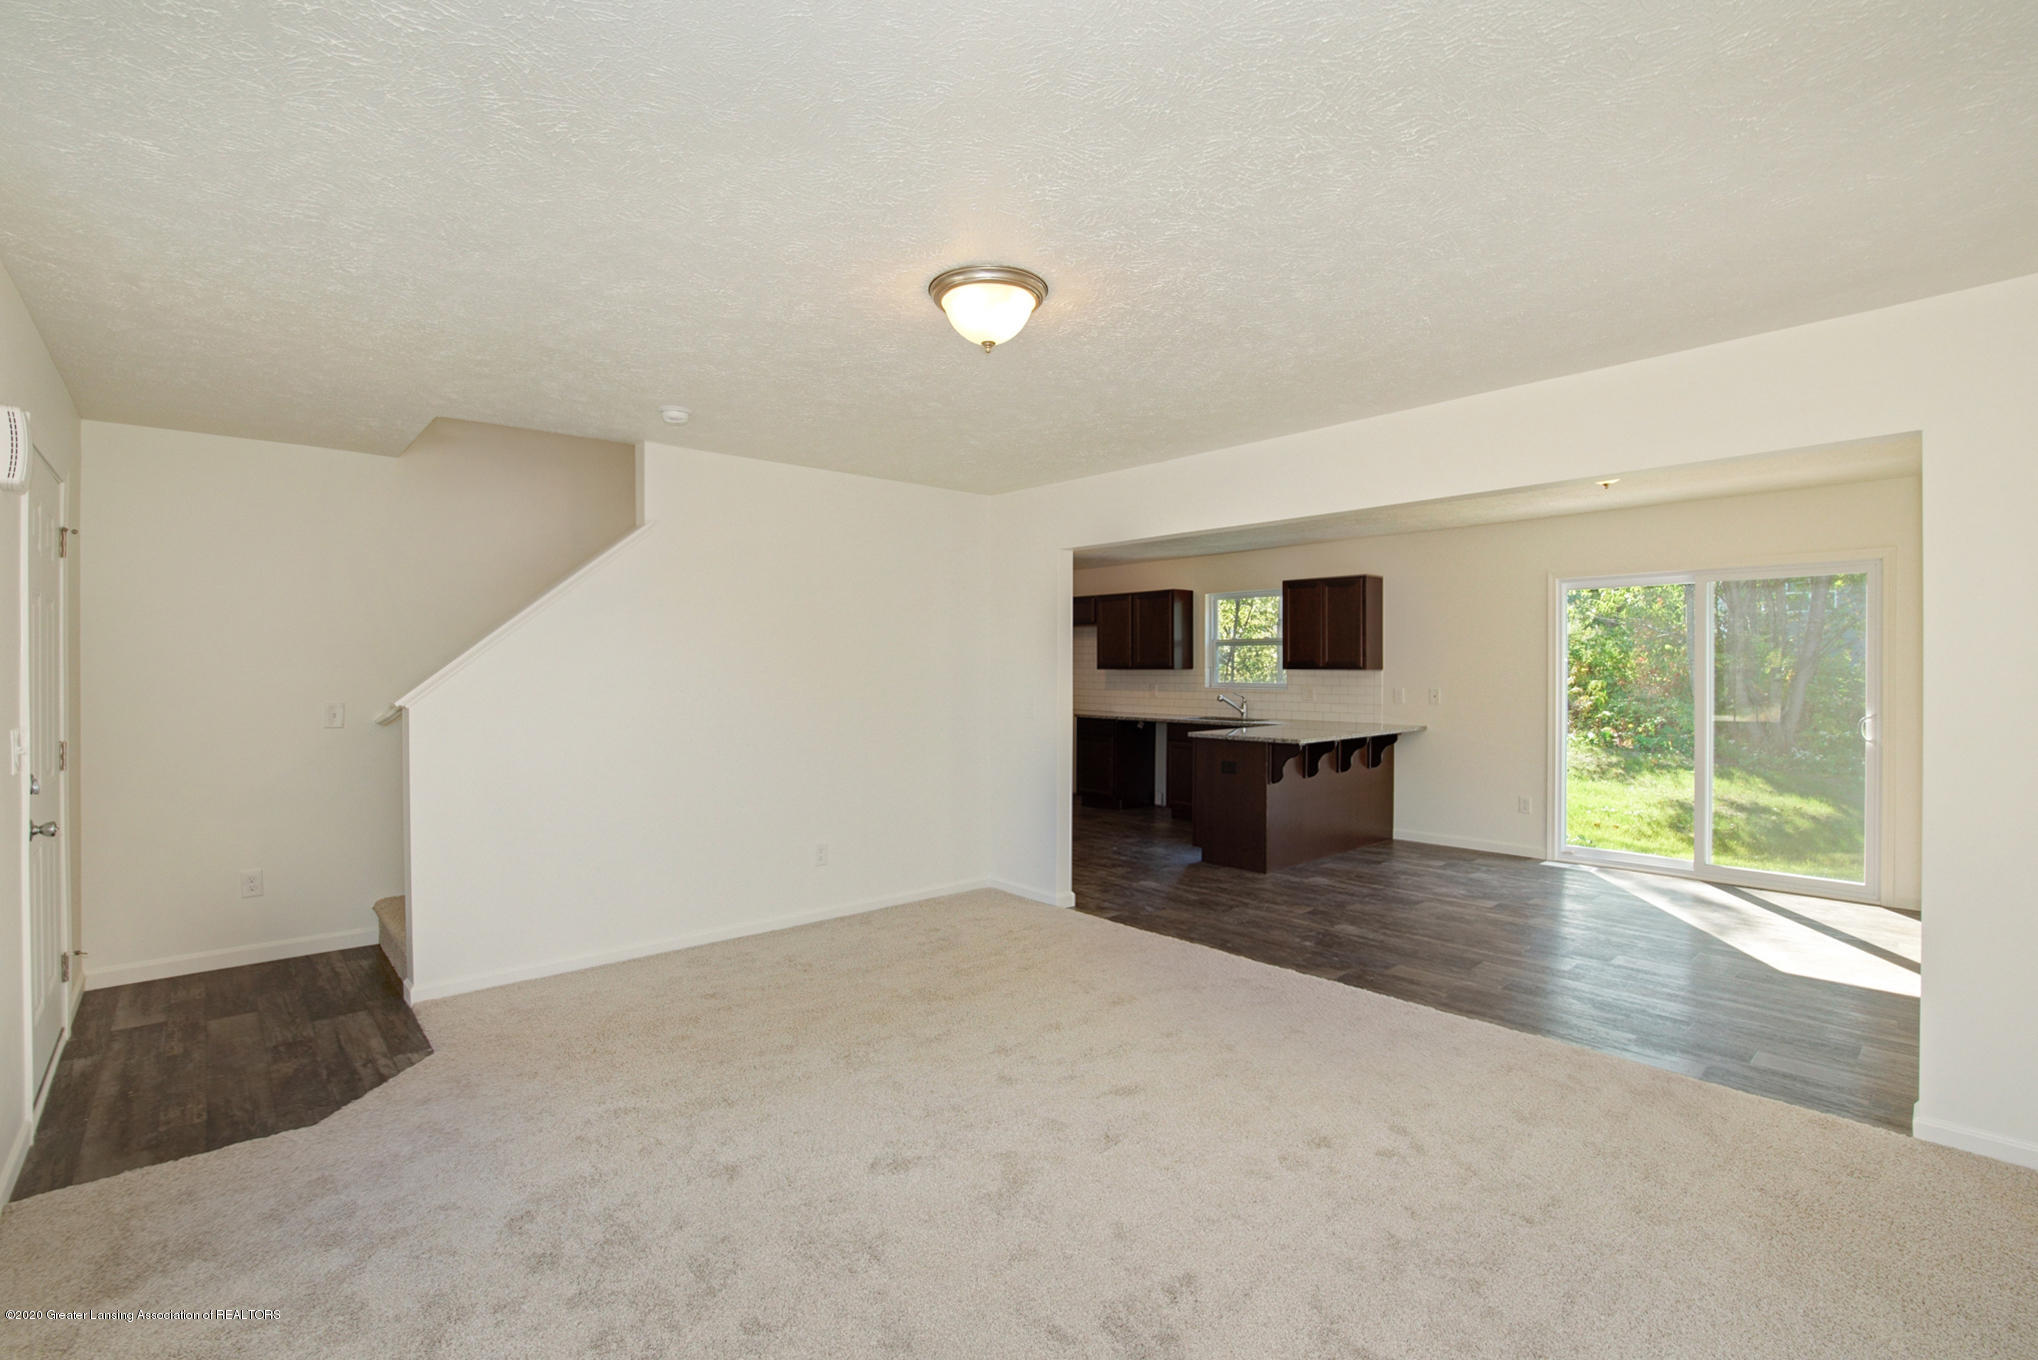 236 River Oaks Dr - OAK079-i1810-Great Room1 - 4